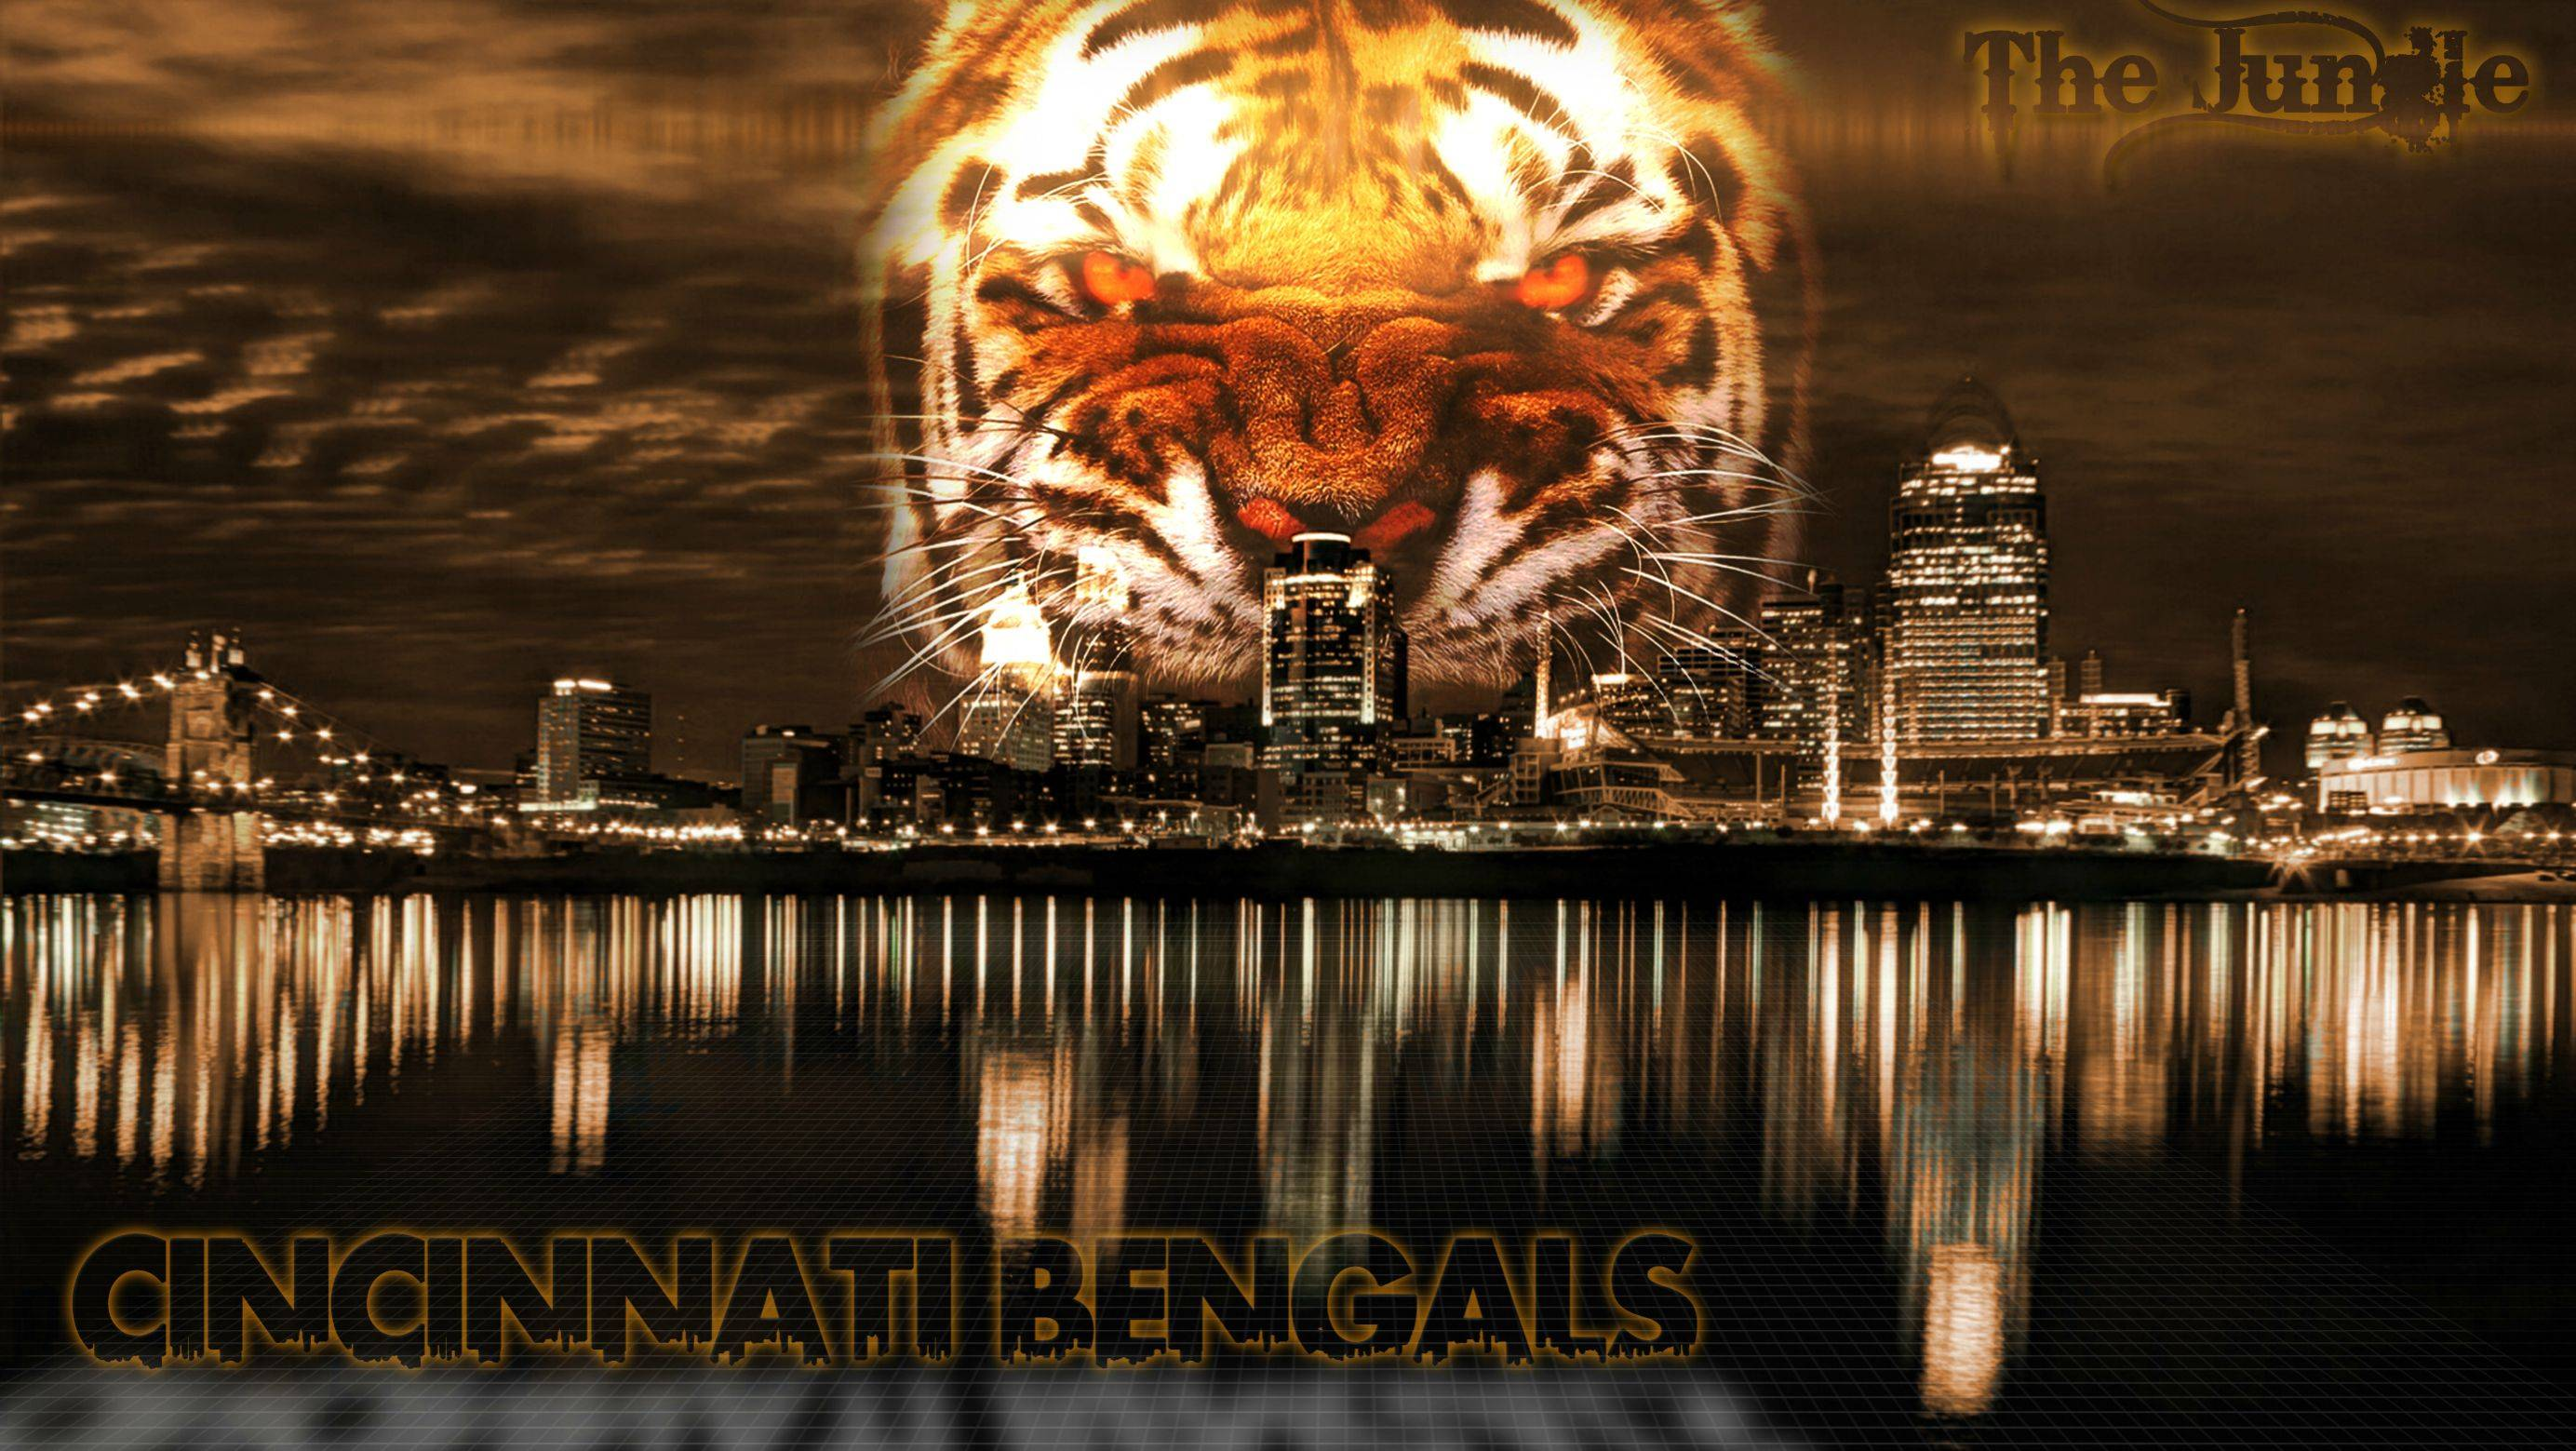 Oregon Football Wallpaper Hd Download Free Cincinnati Bengals Backgrounds Pixelstalk Net